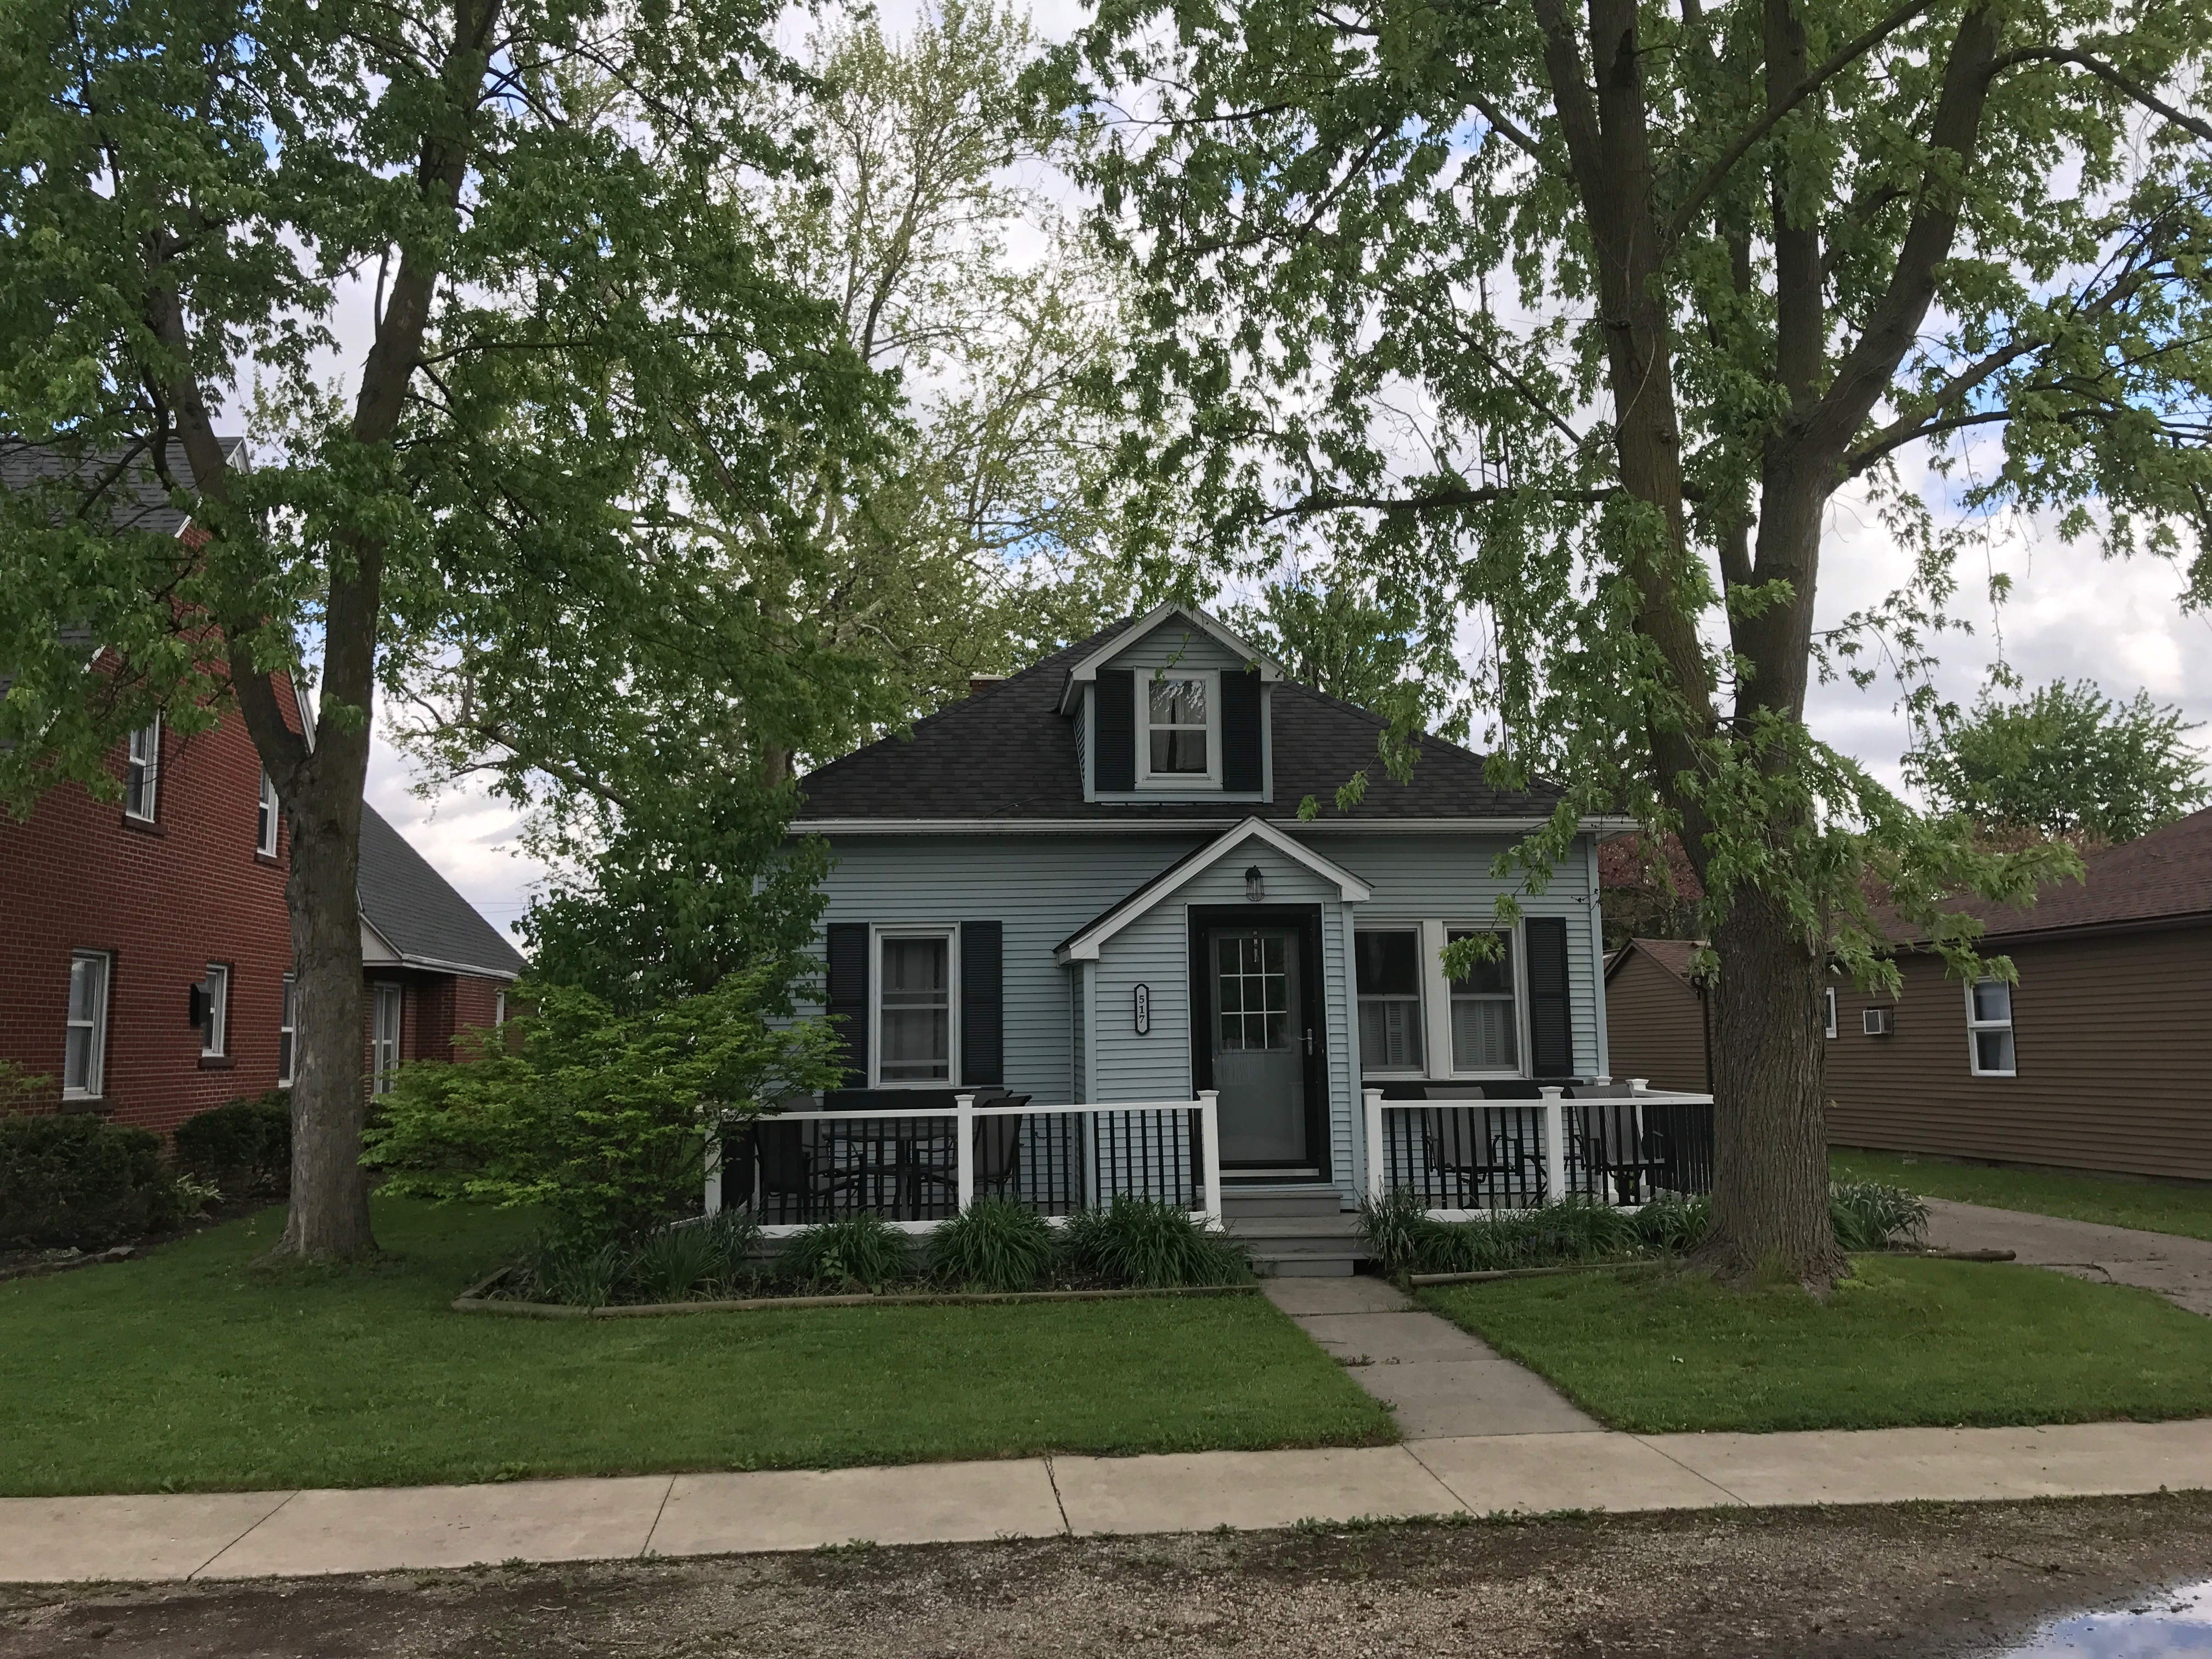 517 Compromise St. Berne, IN 46711